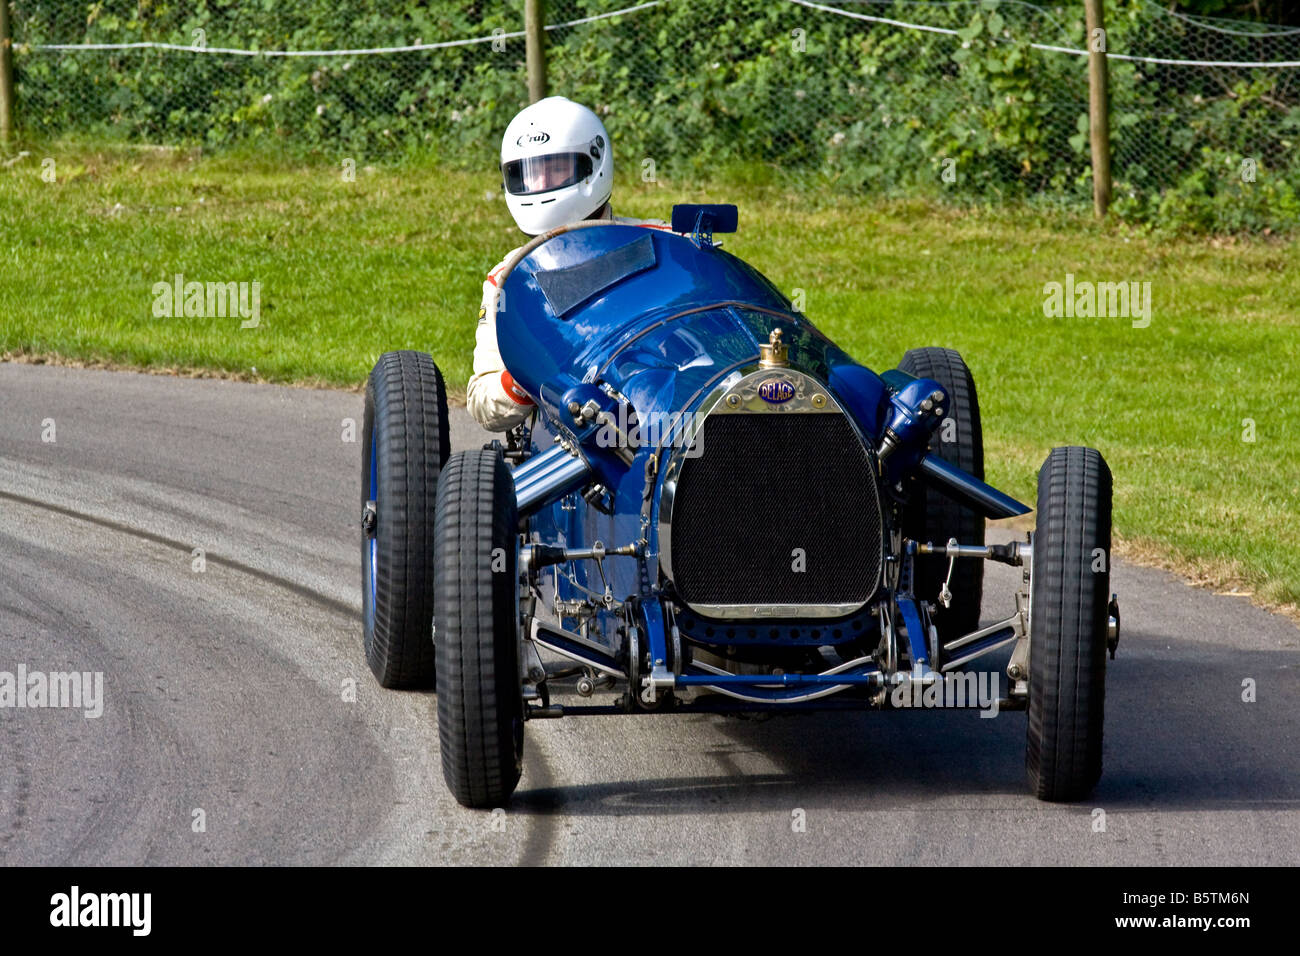 1923 Delage Bequet with driver Alexander Boswell at Goodwood Festival of Speed, Sussex, UK. - Stock Image